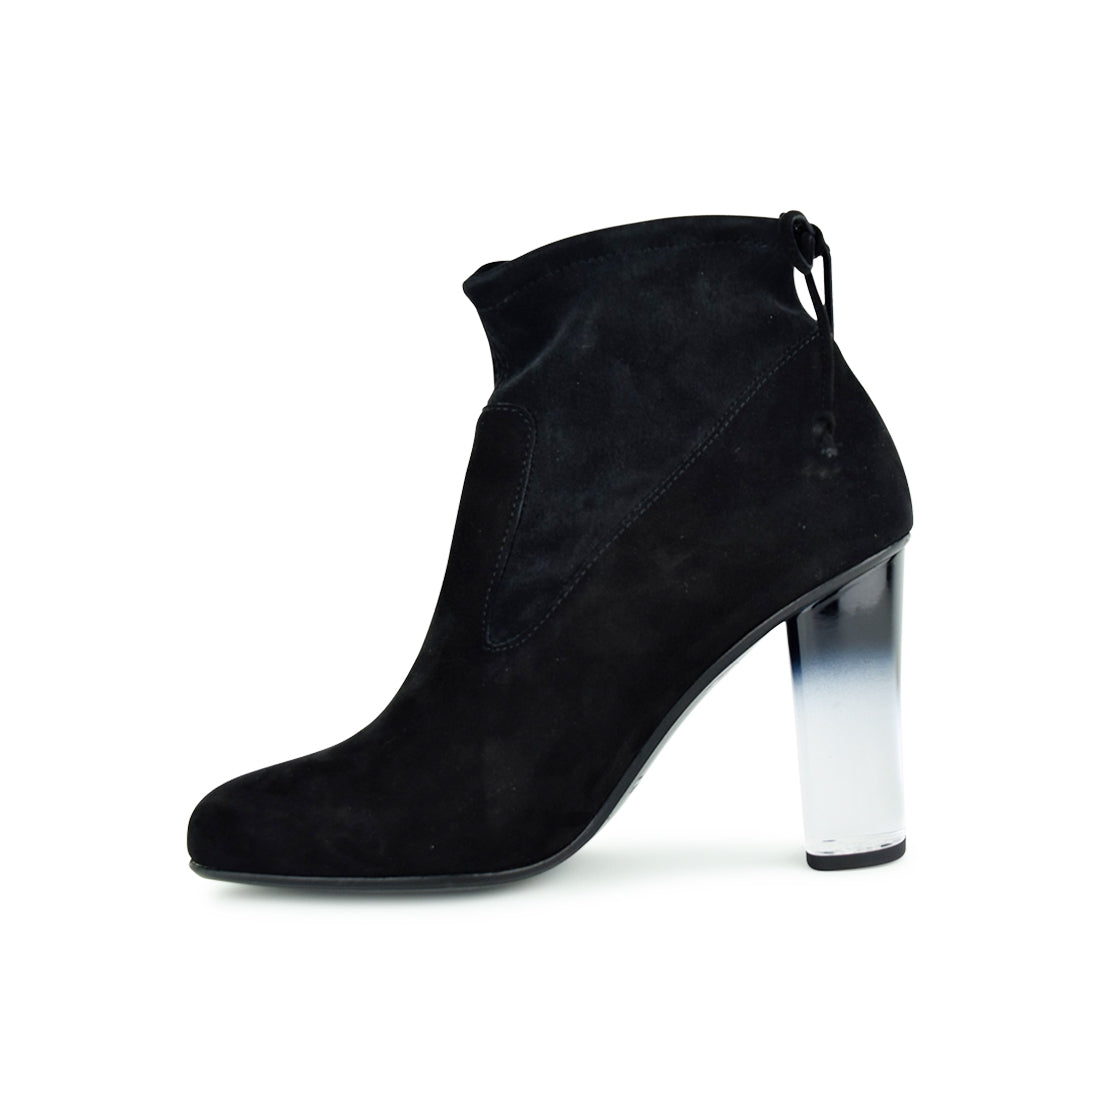 WICK - Peter Kaiser Ankle Boots Black Suede